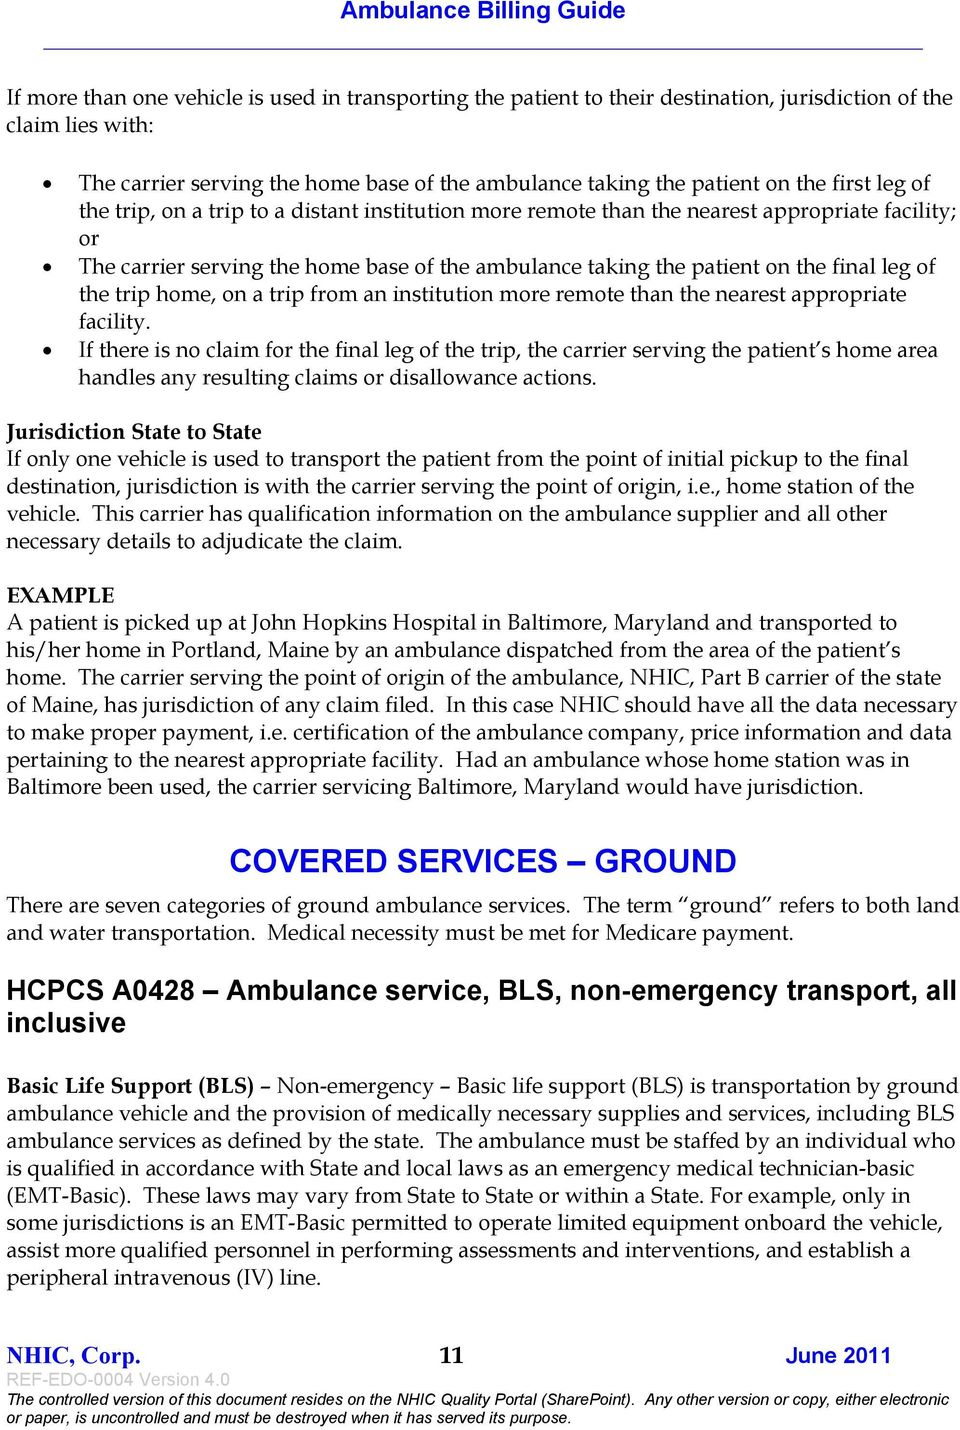 PART B MEDICARE  Ambulance Billing Guide June NHIC, Corp  RT B  REF